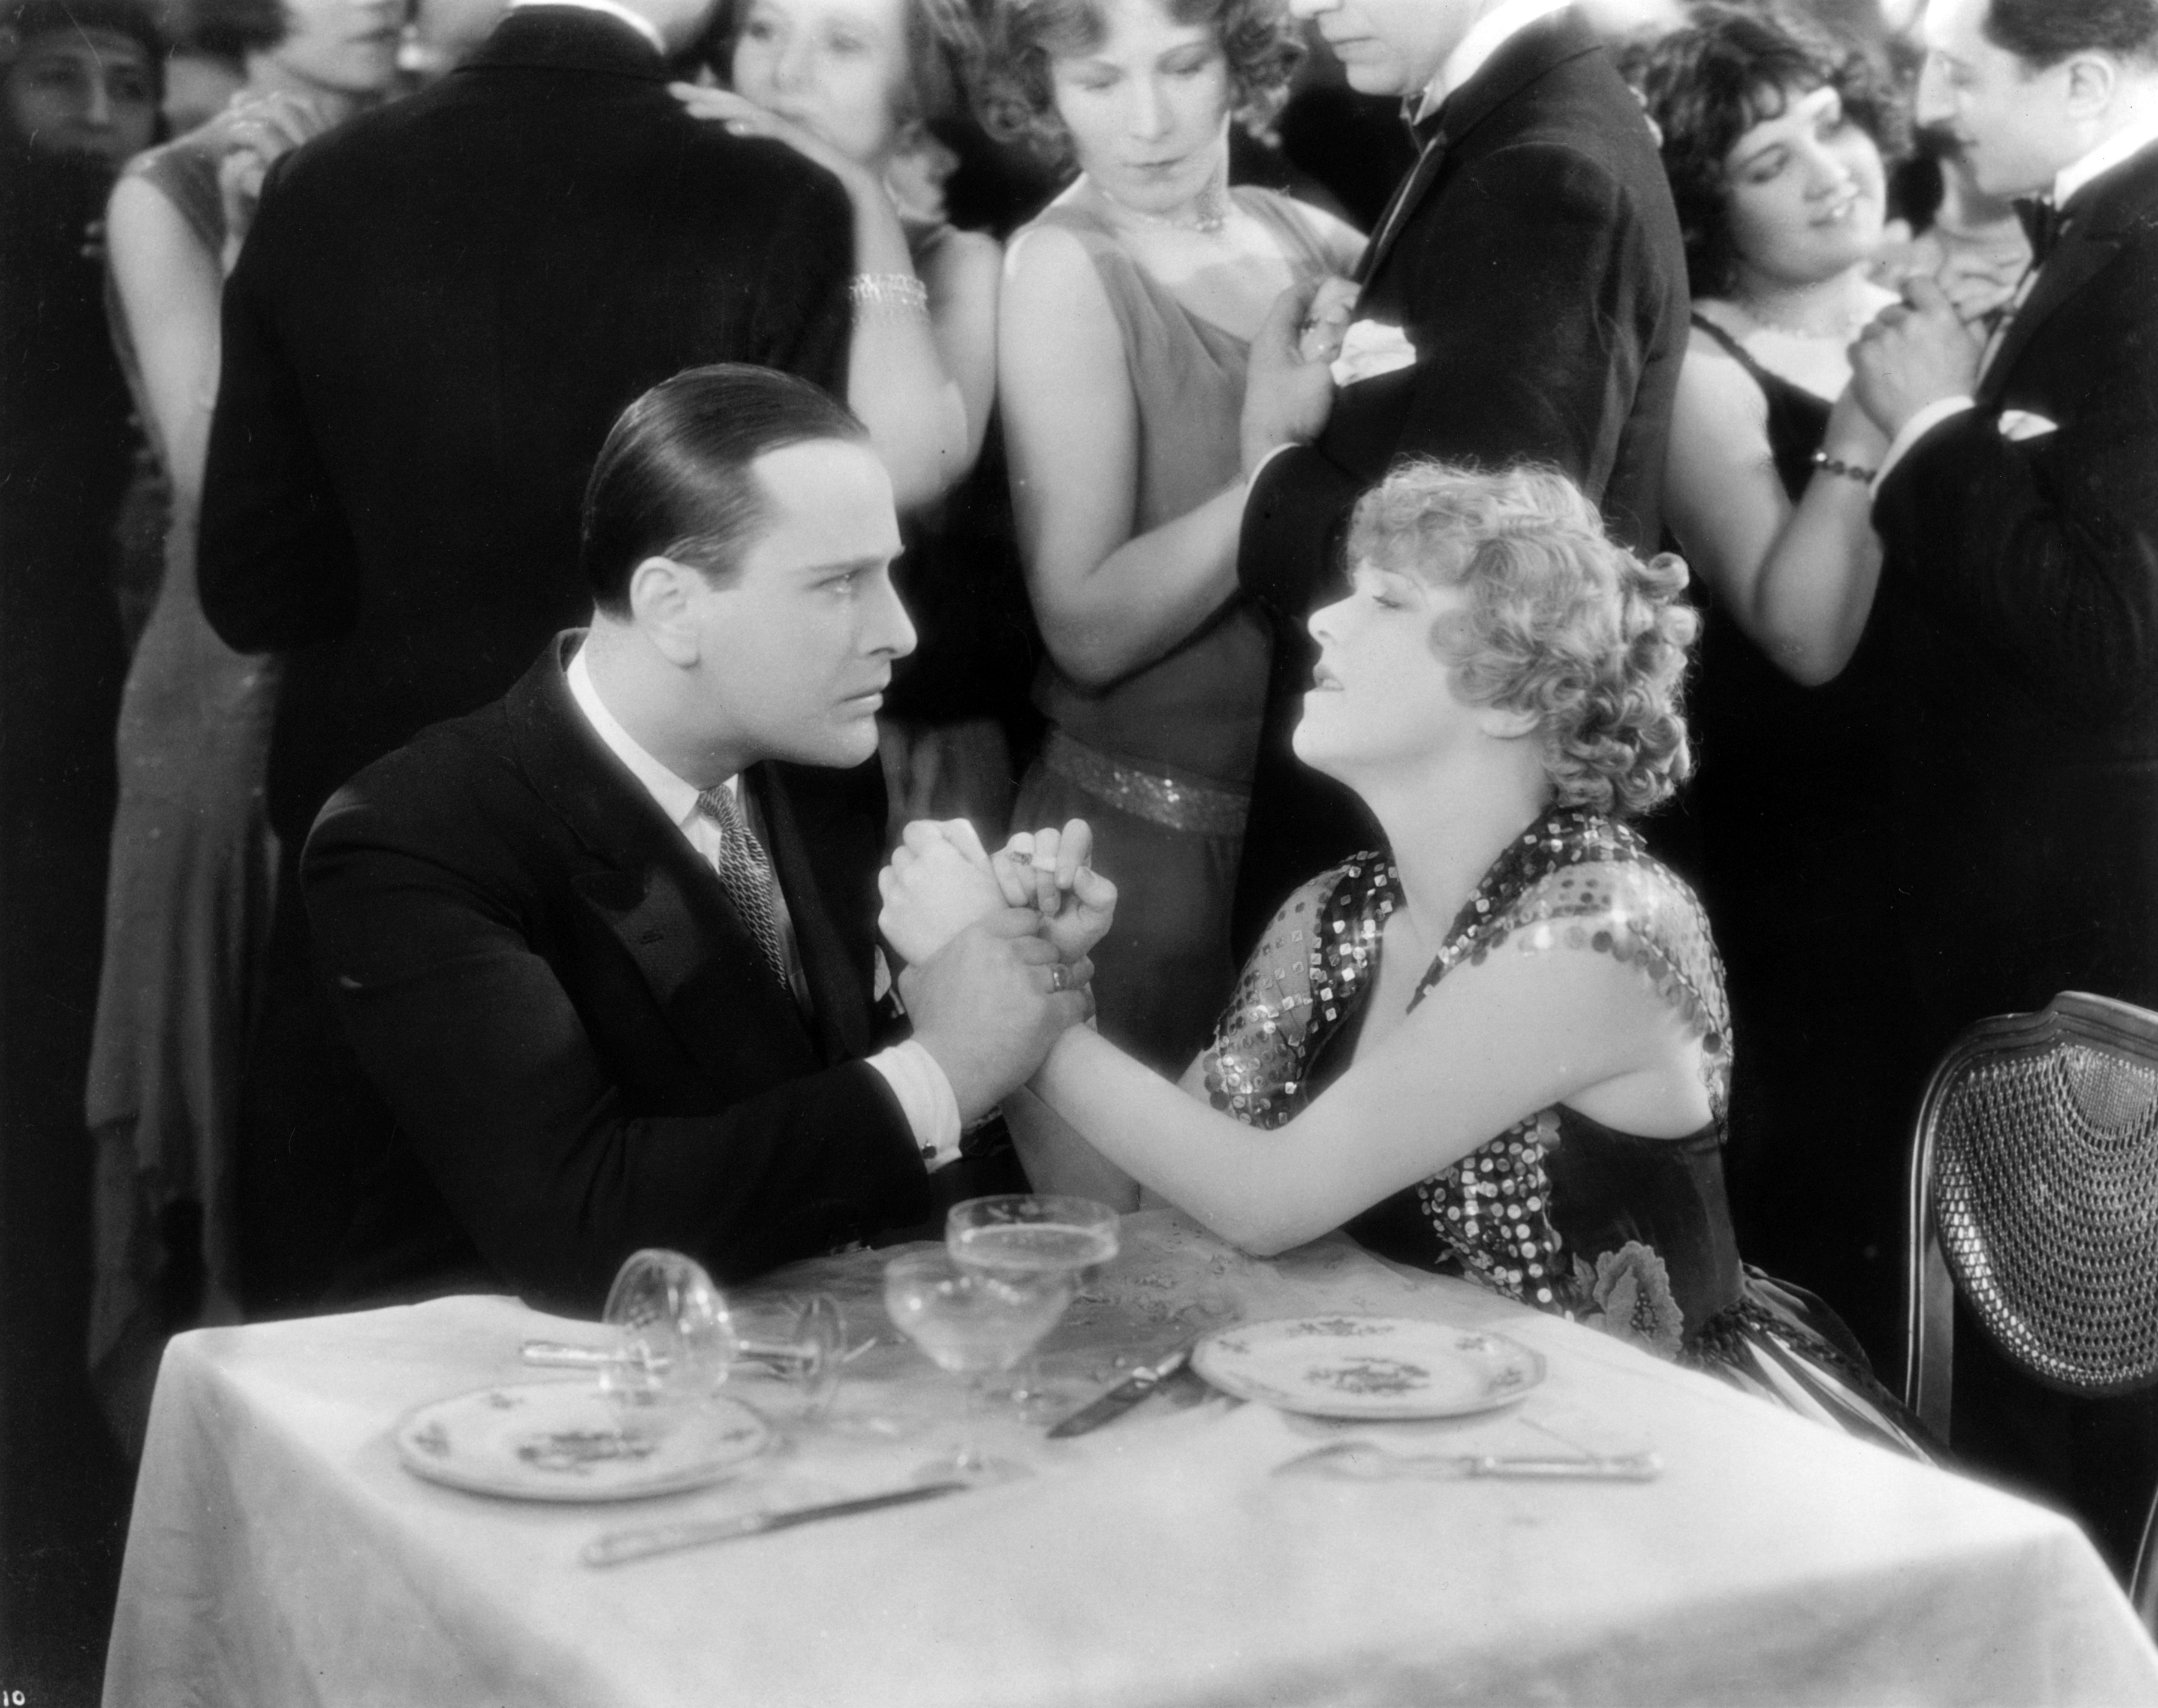 Betty Balfour and Jean Bradin in Champagne (1928)